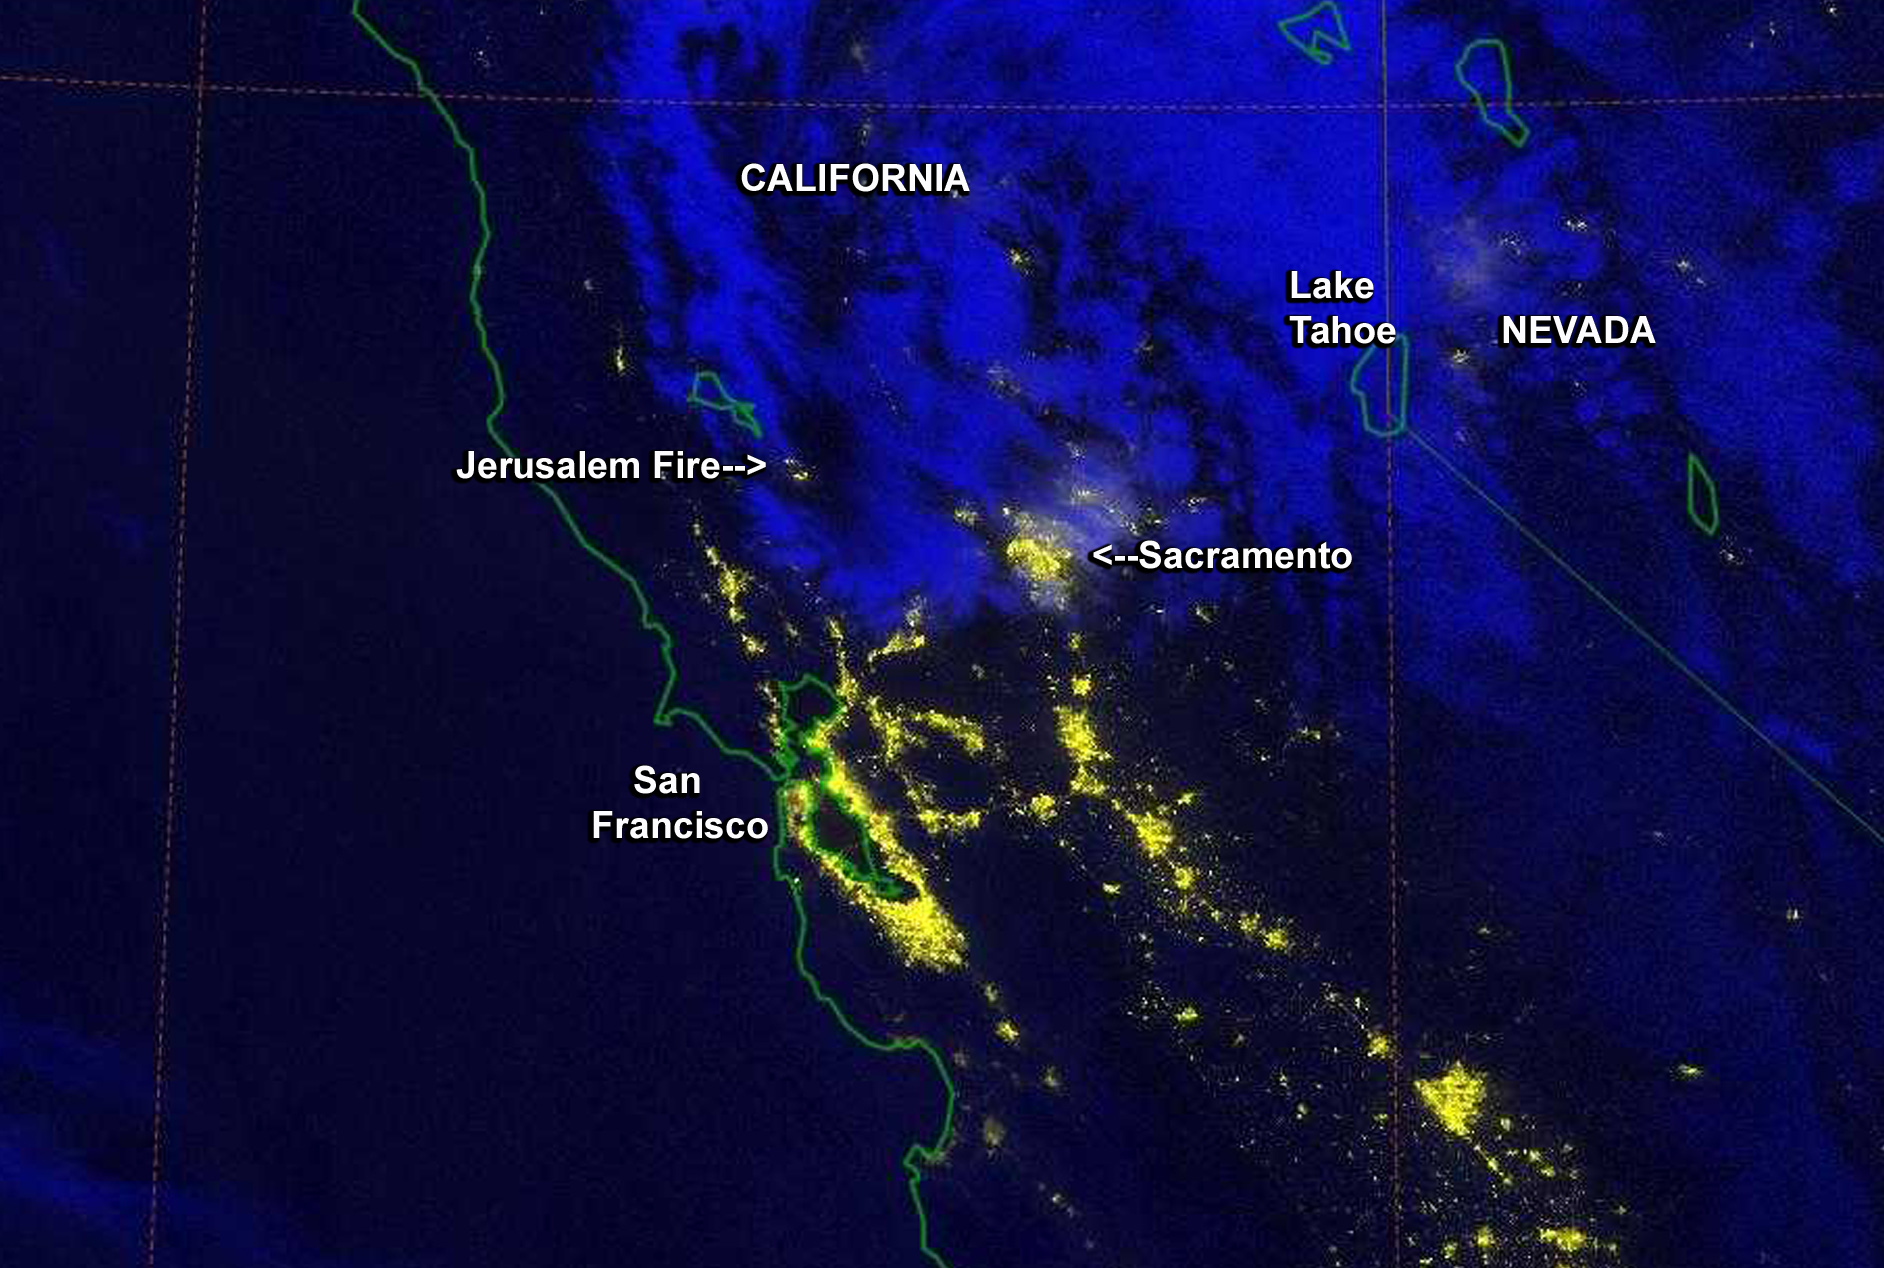 California S Jerusalem Fire At Night Nasa